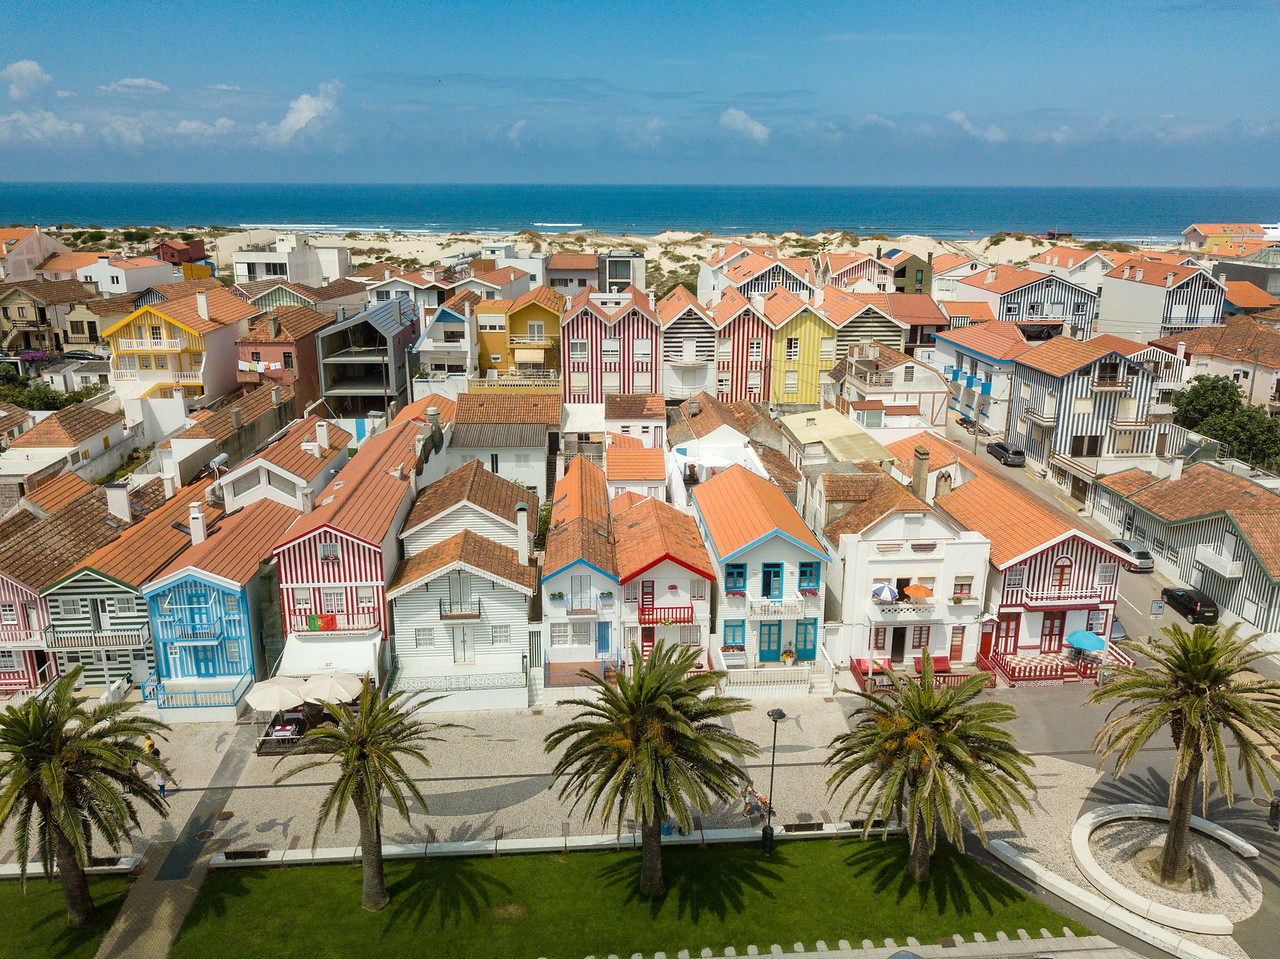 Aerial View of the Striped Beach Houses of Costa Nova, Portugal